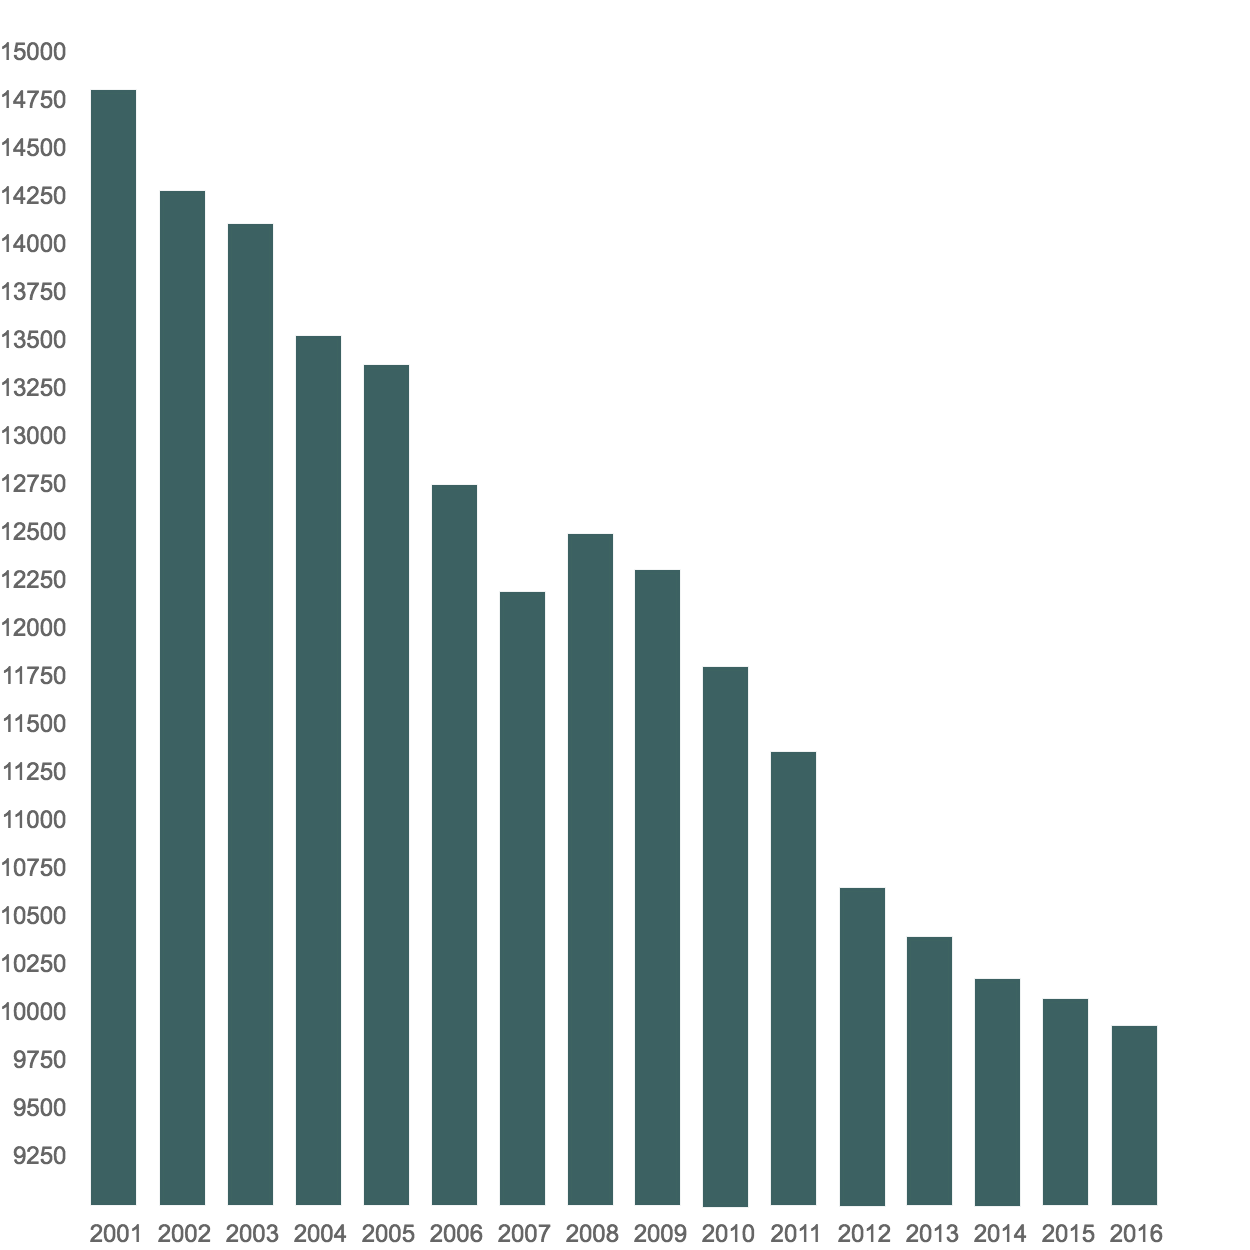 hight resolution of estimated red panda population figures between 2001 and 2016